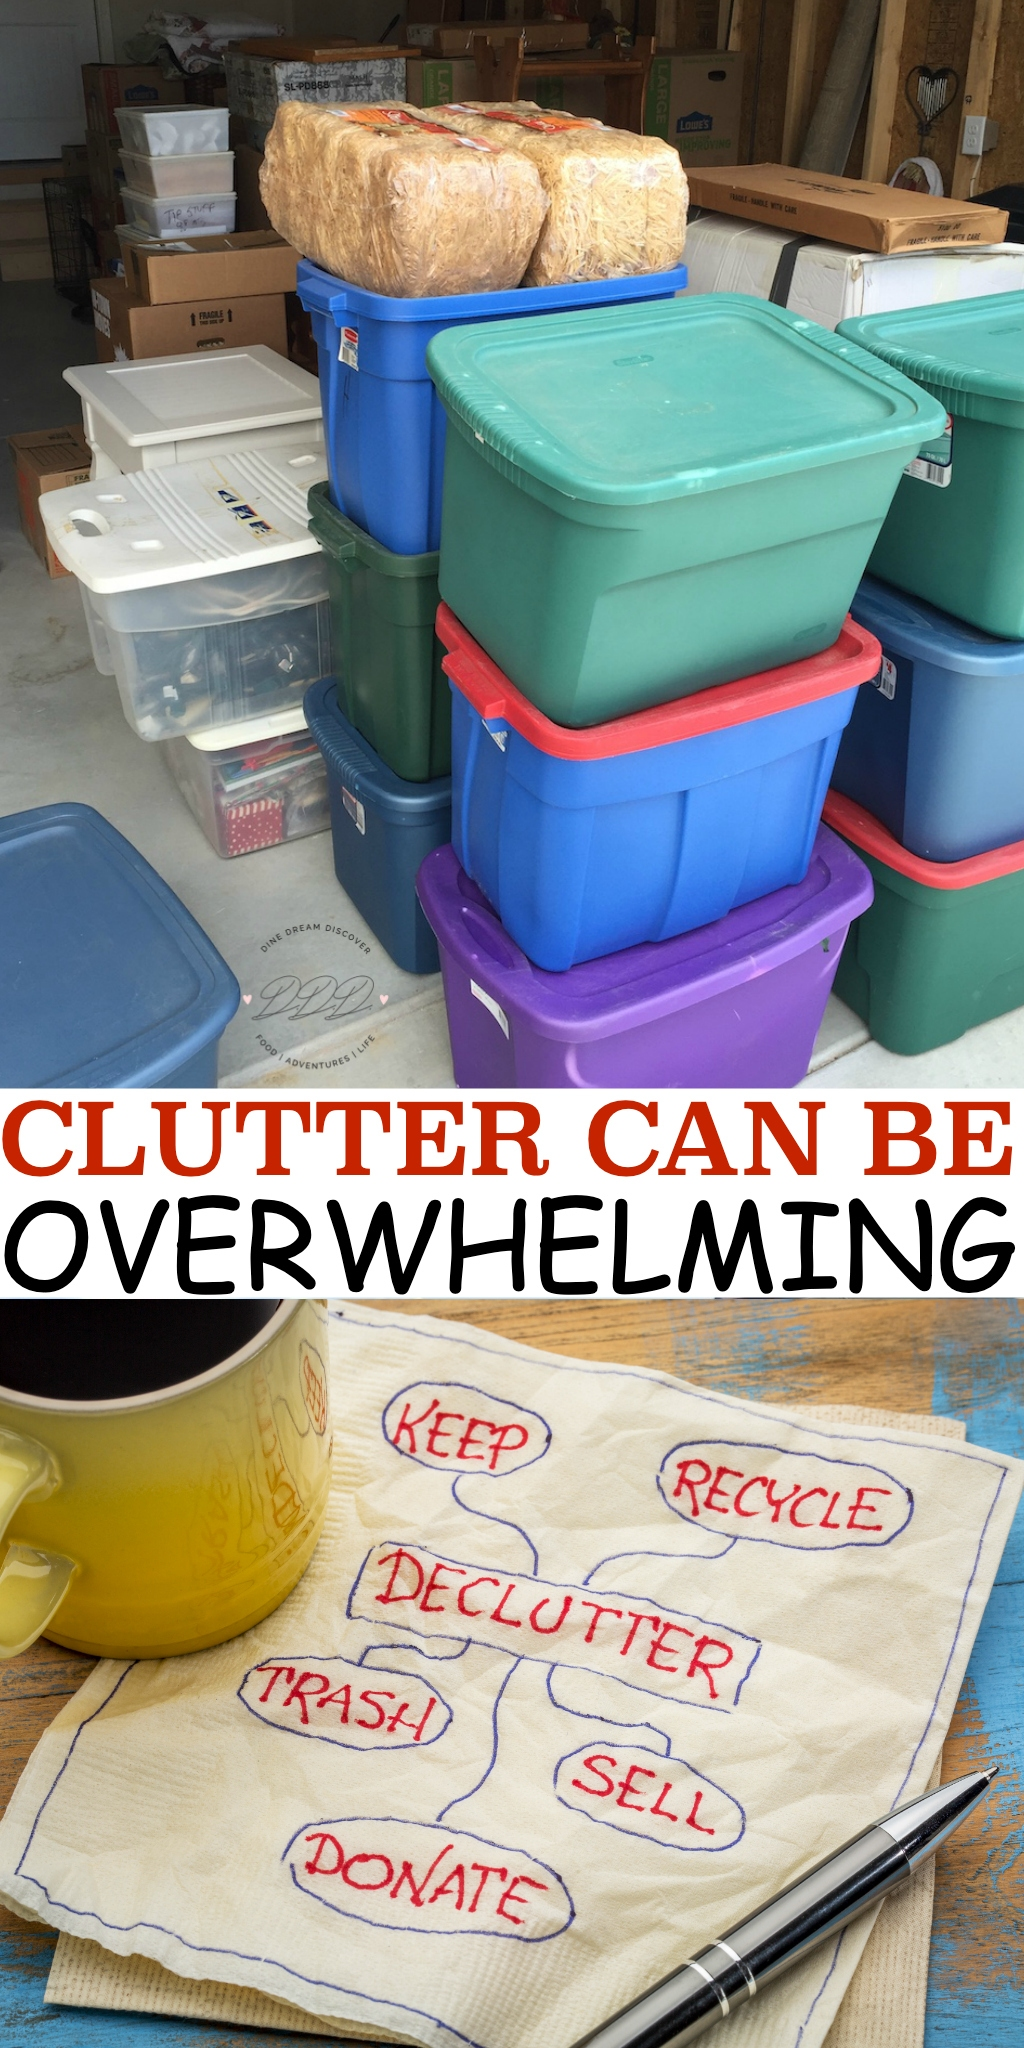 Clutter can get out of control and important items are scattered everywhere, or buried under a mountain of stuff. Here are some tips to declutter.